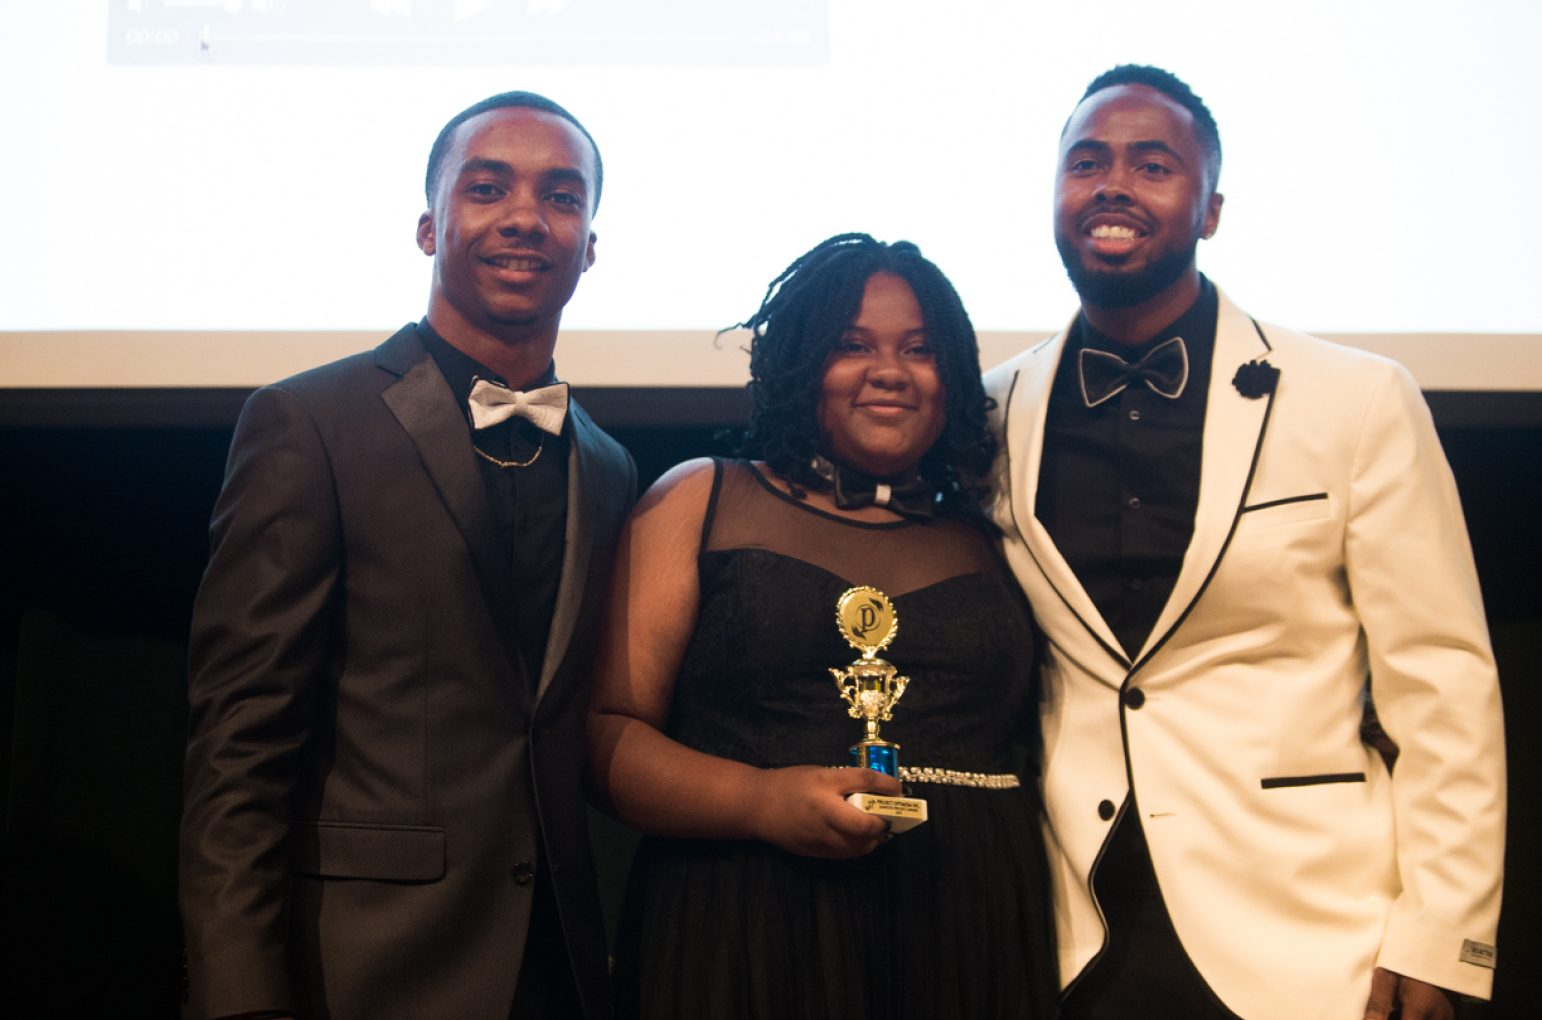 Journey Ashford, center, was one of the first youth mentees to receive a scholarship from Project Optimism during its inaugural Black & White Gala on Sundayin the University Union Redwood Room. (Photo by Nicole Fowler)